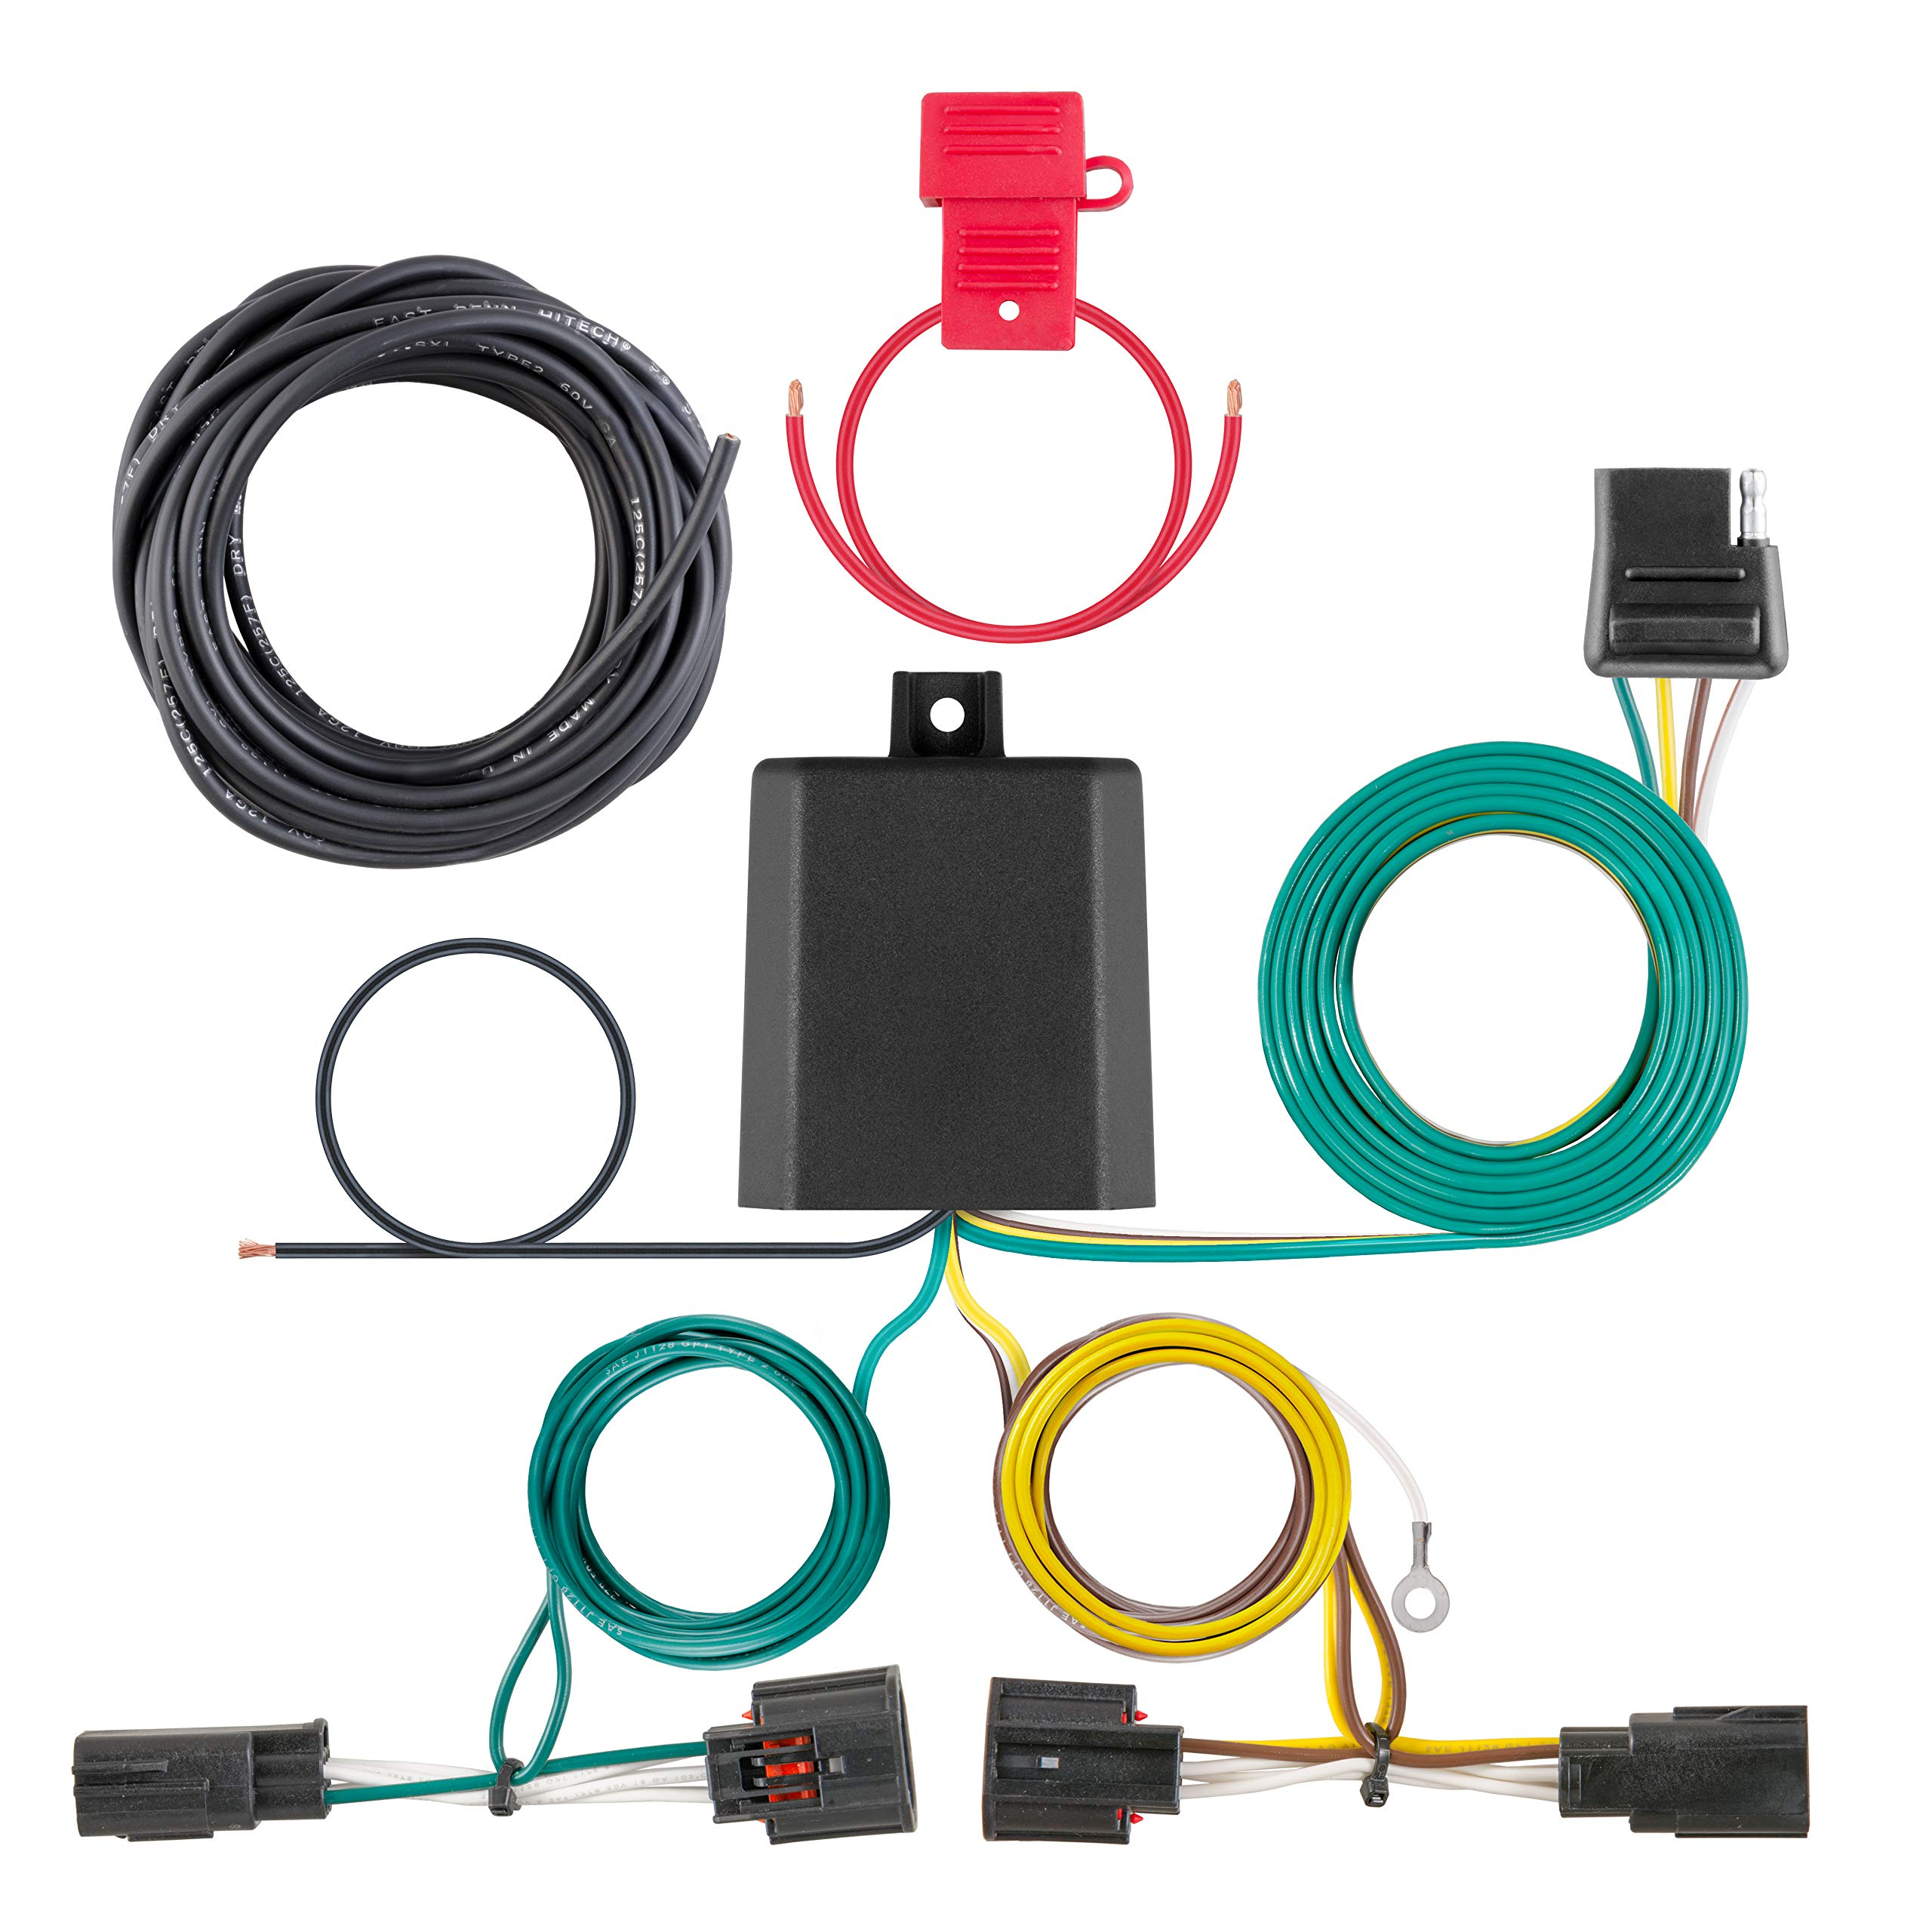 Utility Trailer Light Wiring Diagram And Required Parts Etrailercom